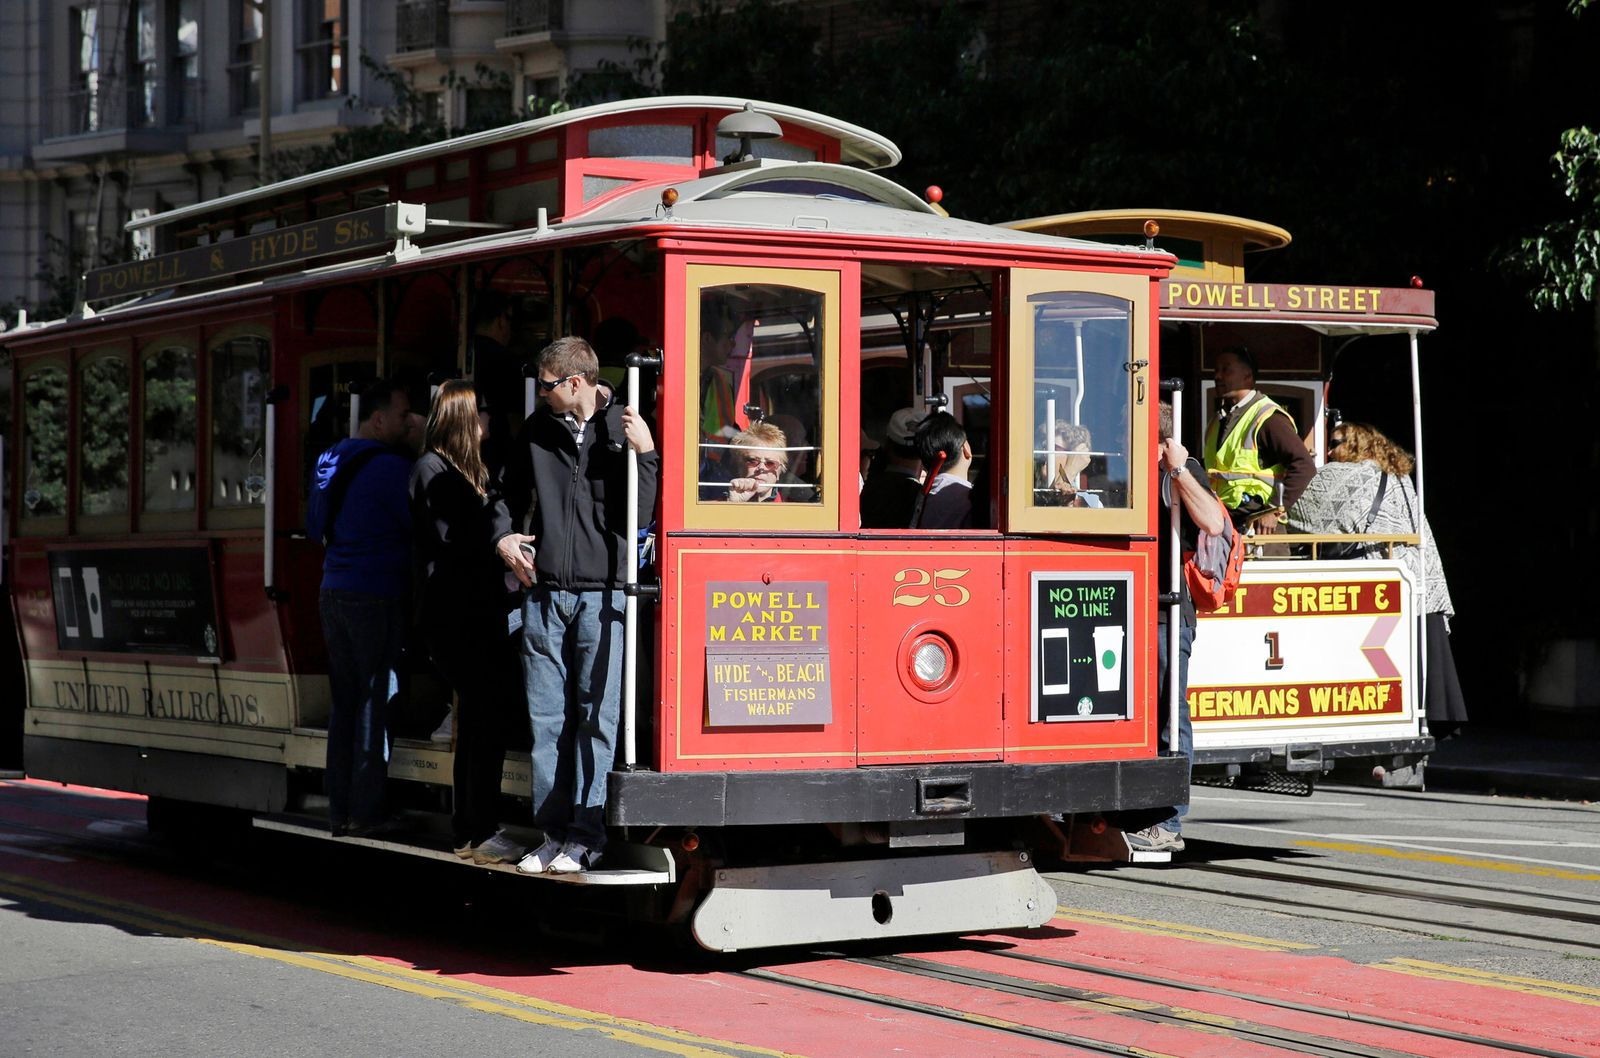 FILE - In this Nov. 3, 2015 file photo, a pair of cable cars go past each other on Powell Street atop Nob Hill in San Francisco. (AP Photo/Eric Risberg, File)